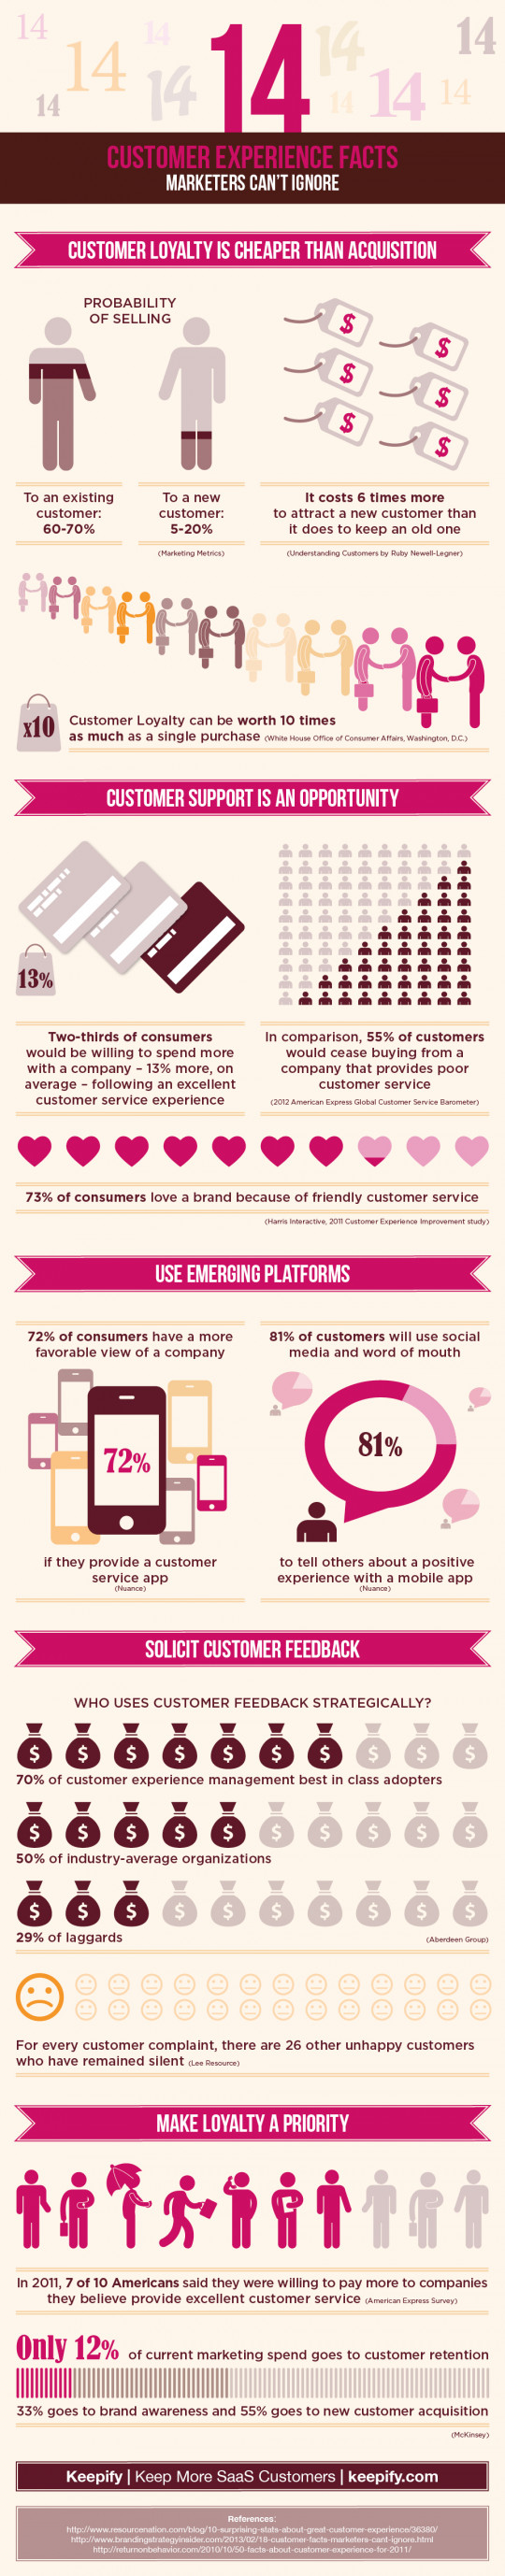 14 customer experience facts